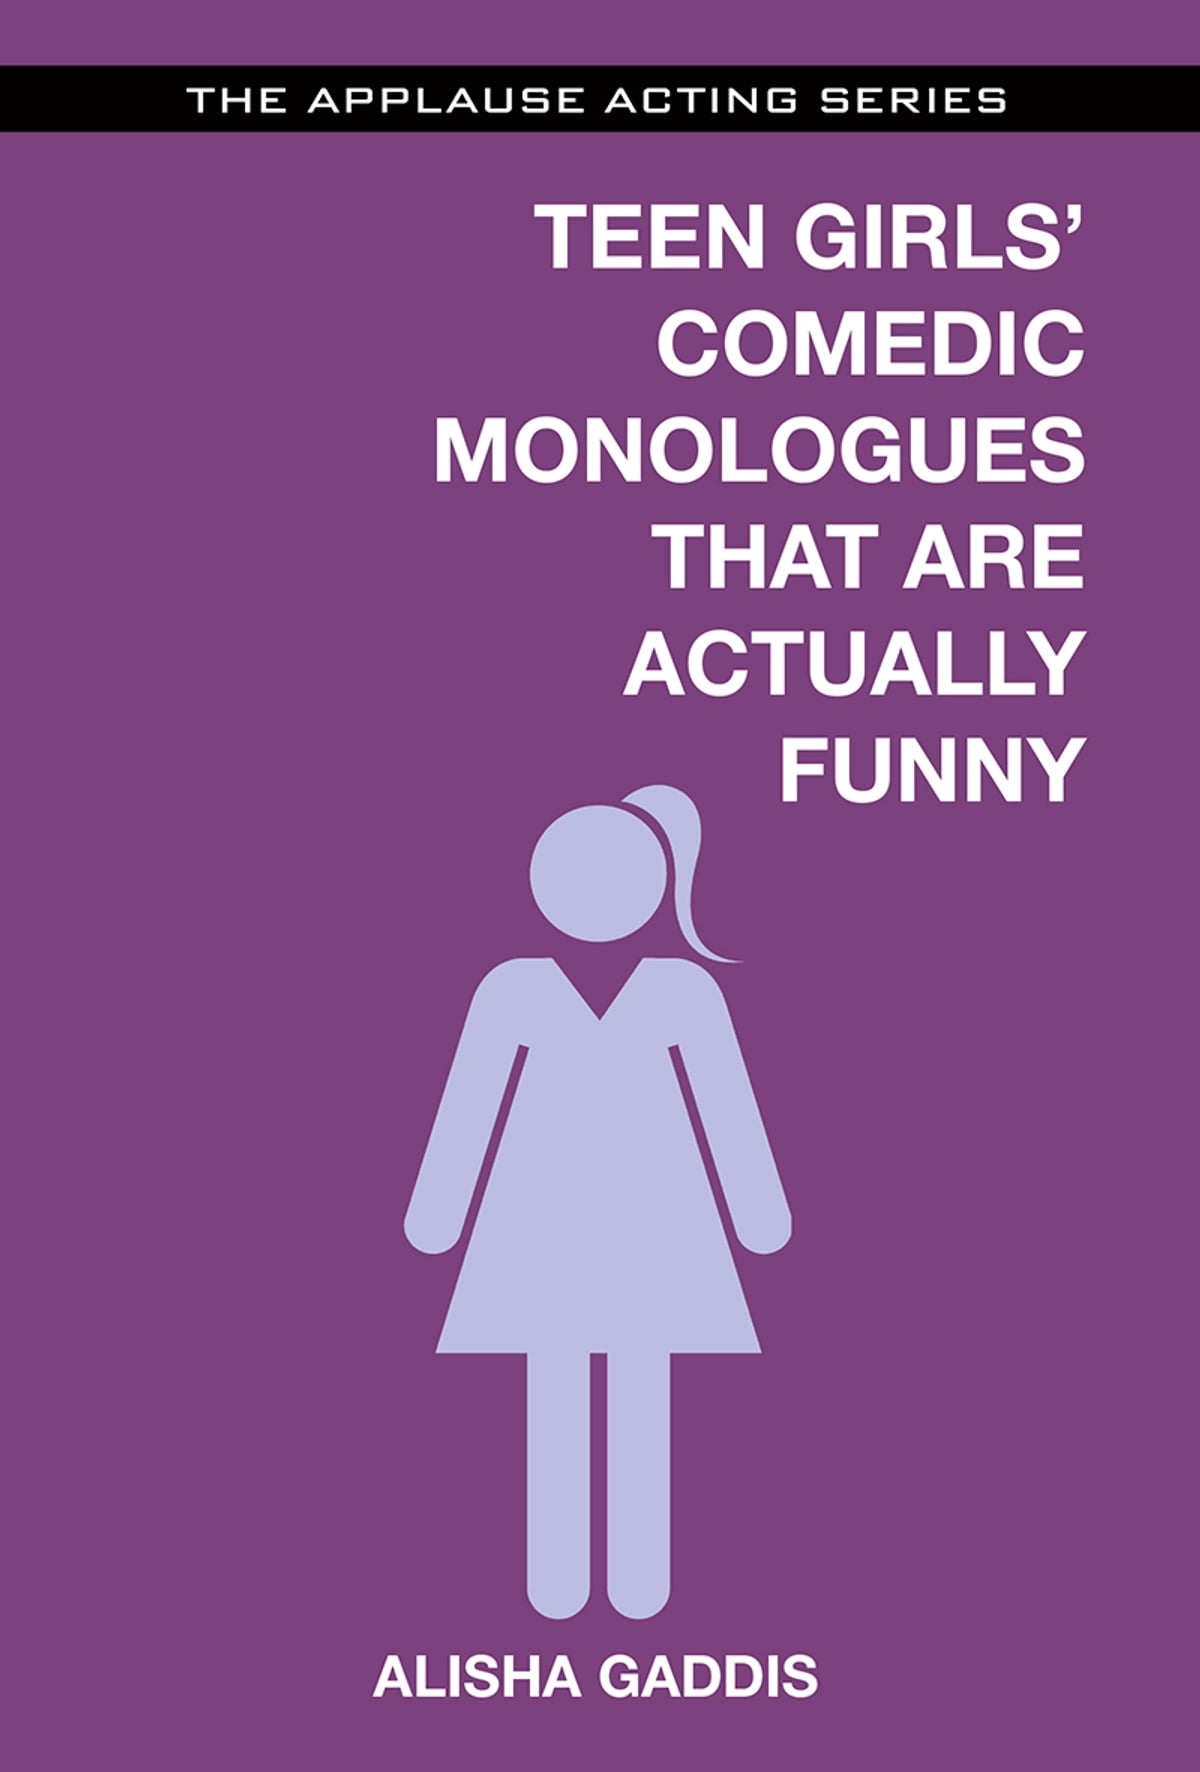 Teen Girls' Comedic Monologues That Are Actually Funny eBook by Alisha  Gaddis - 9781495049644 | Rakuten Kobo